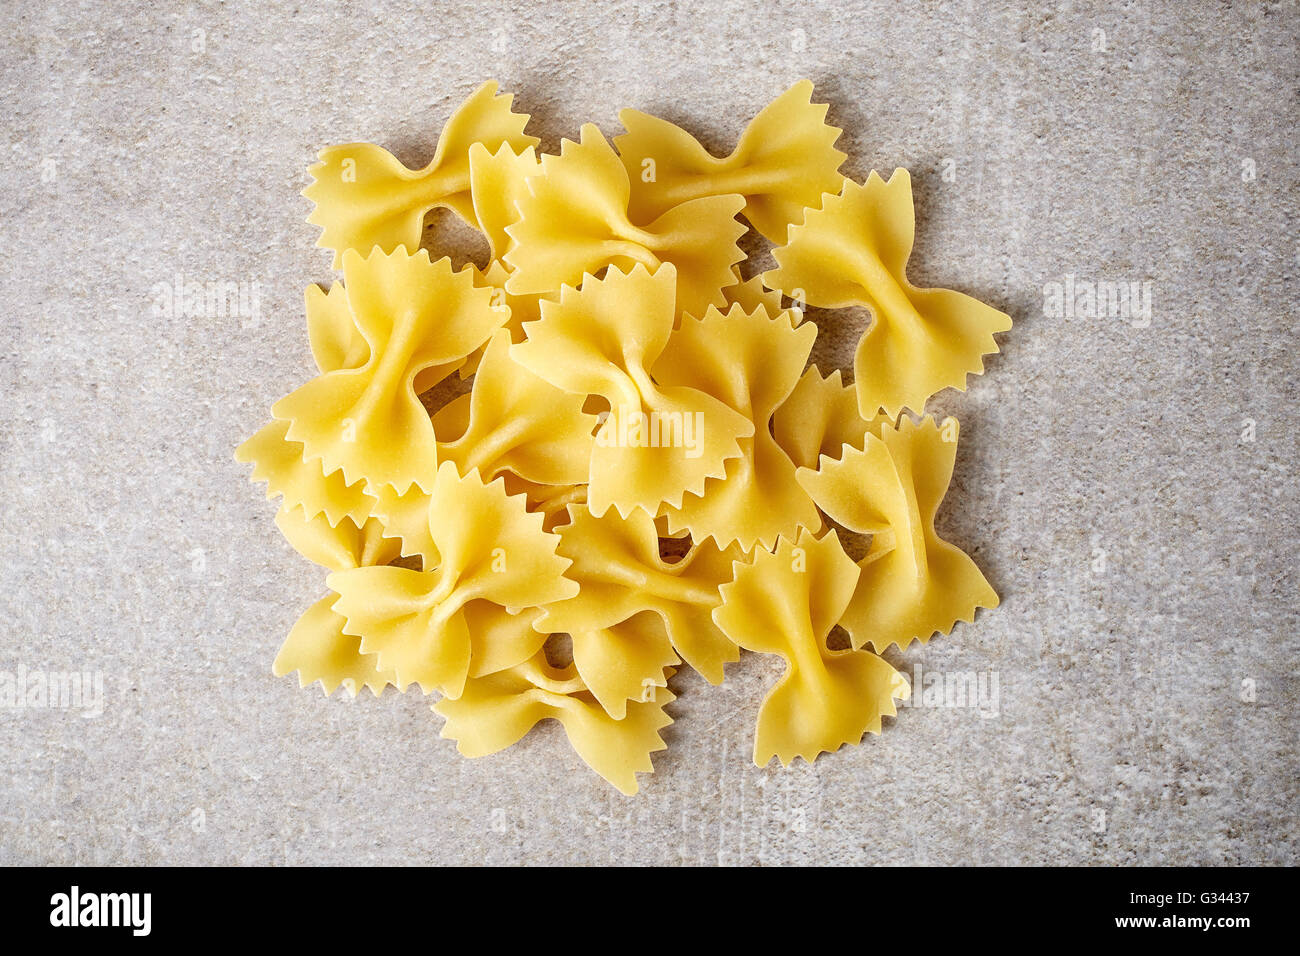 Bow tie pasta on stone table, top view - Stock Image